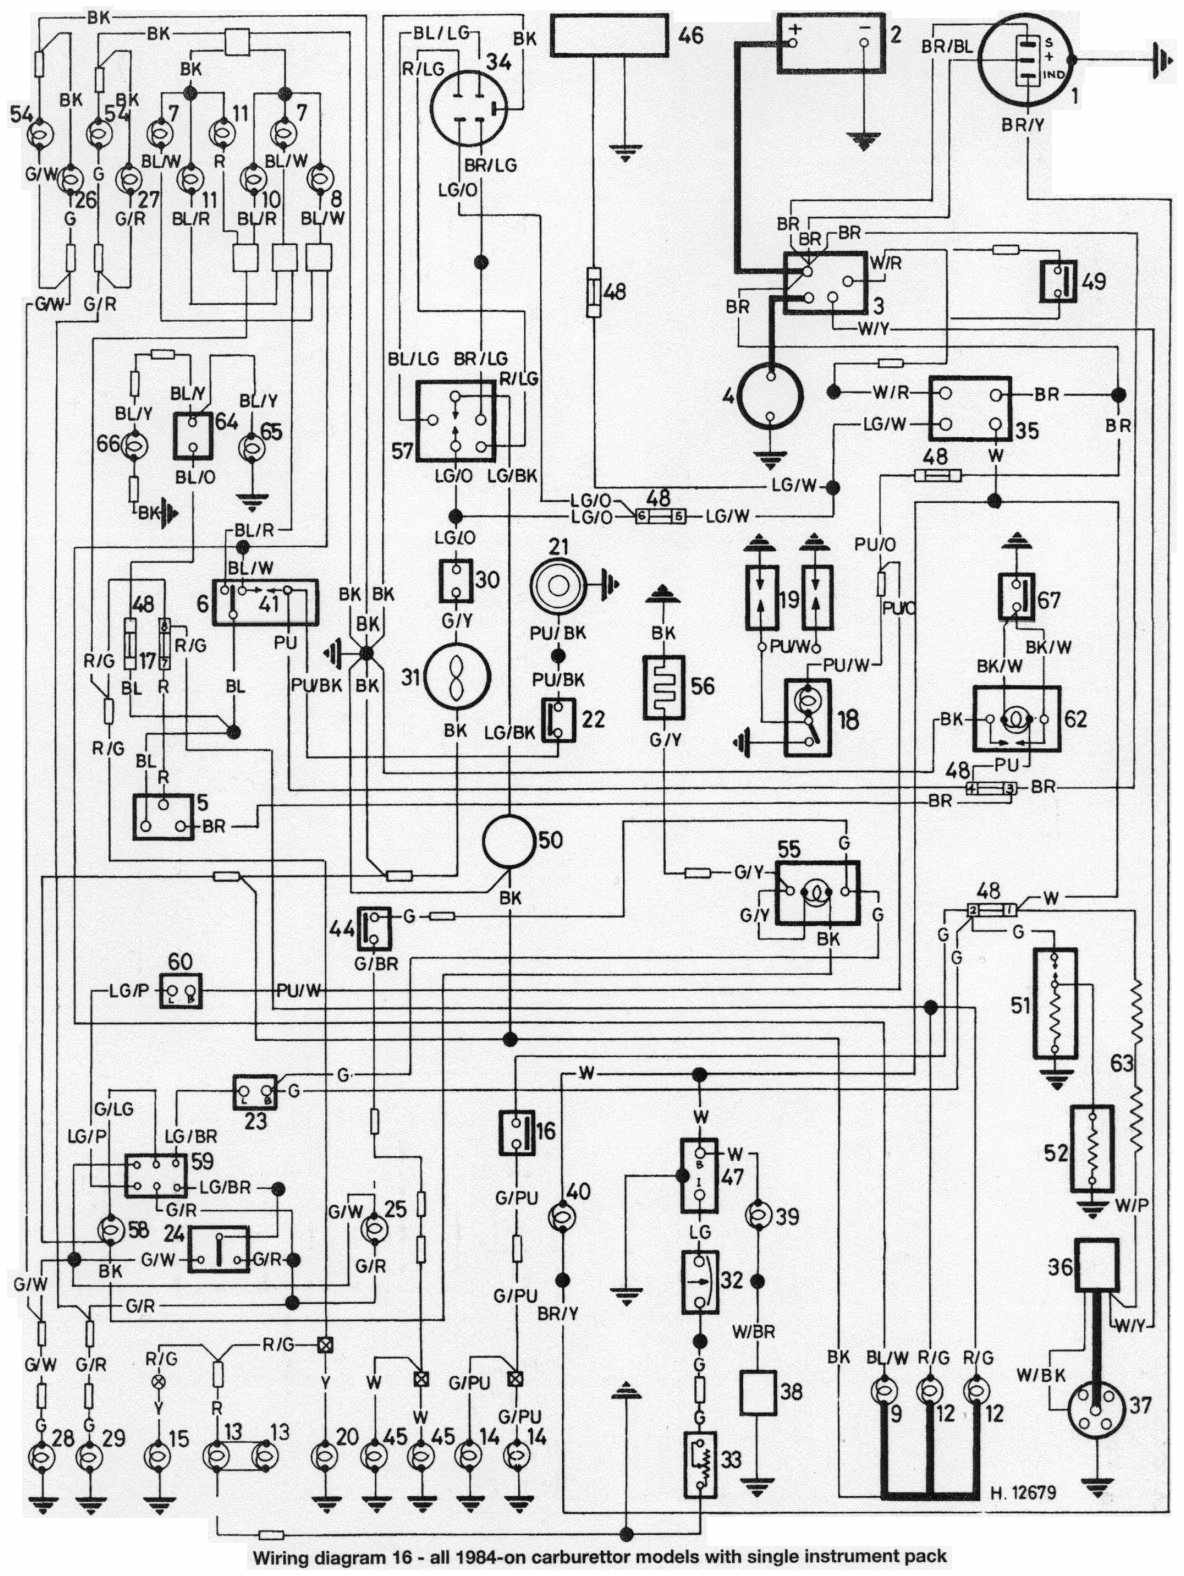 1985 Austin Mini Wiring Diagram  Wiring Diagram